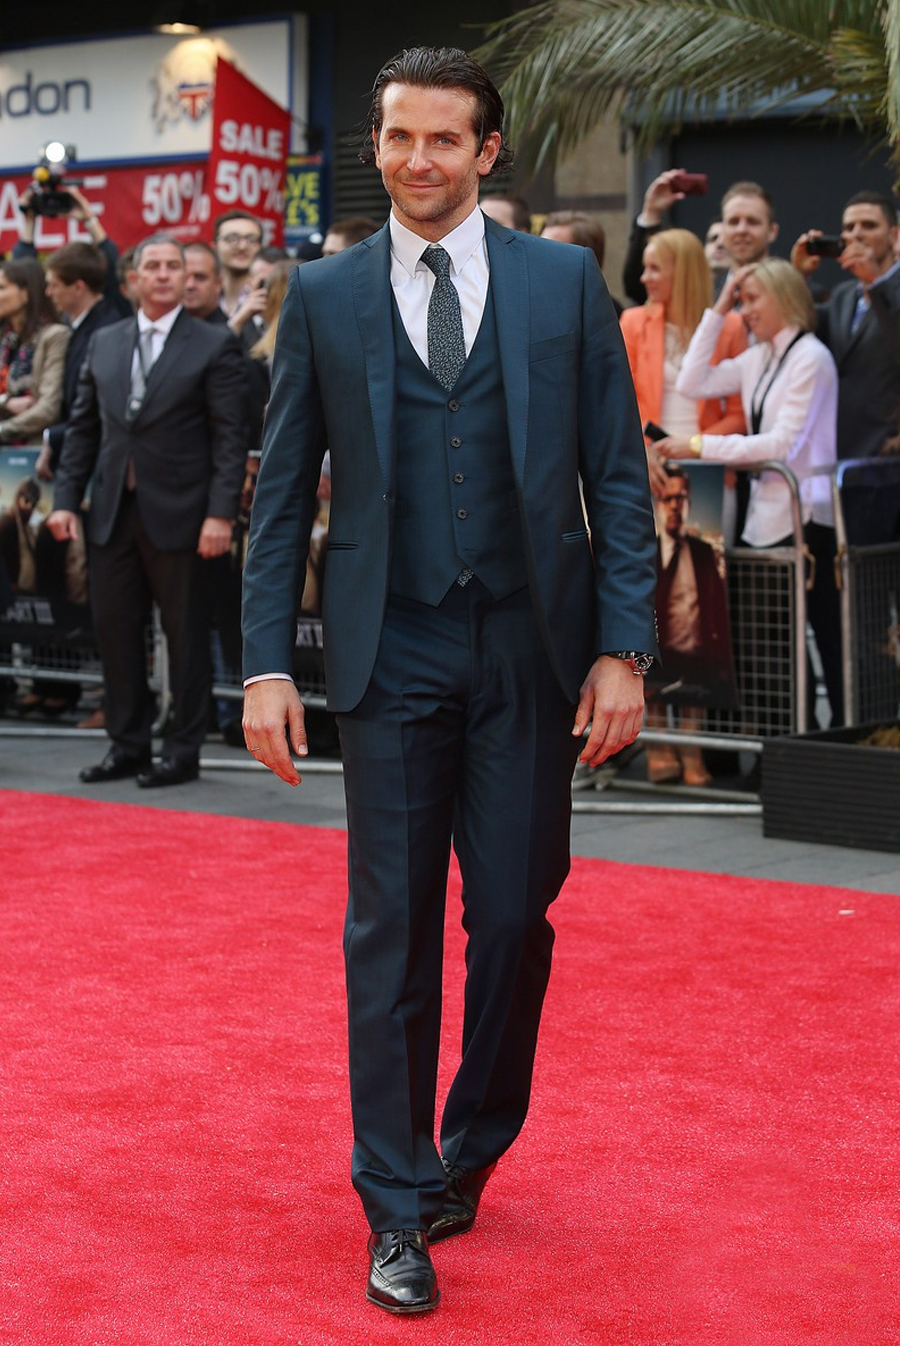 Bradley Cooper in a gray suit at a red carpet